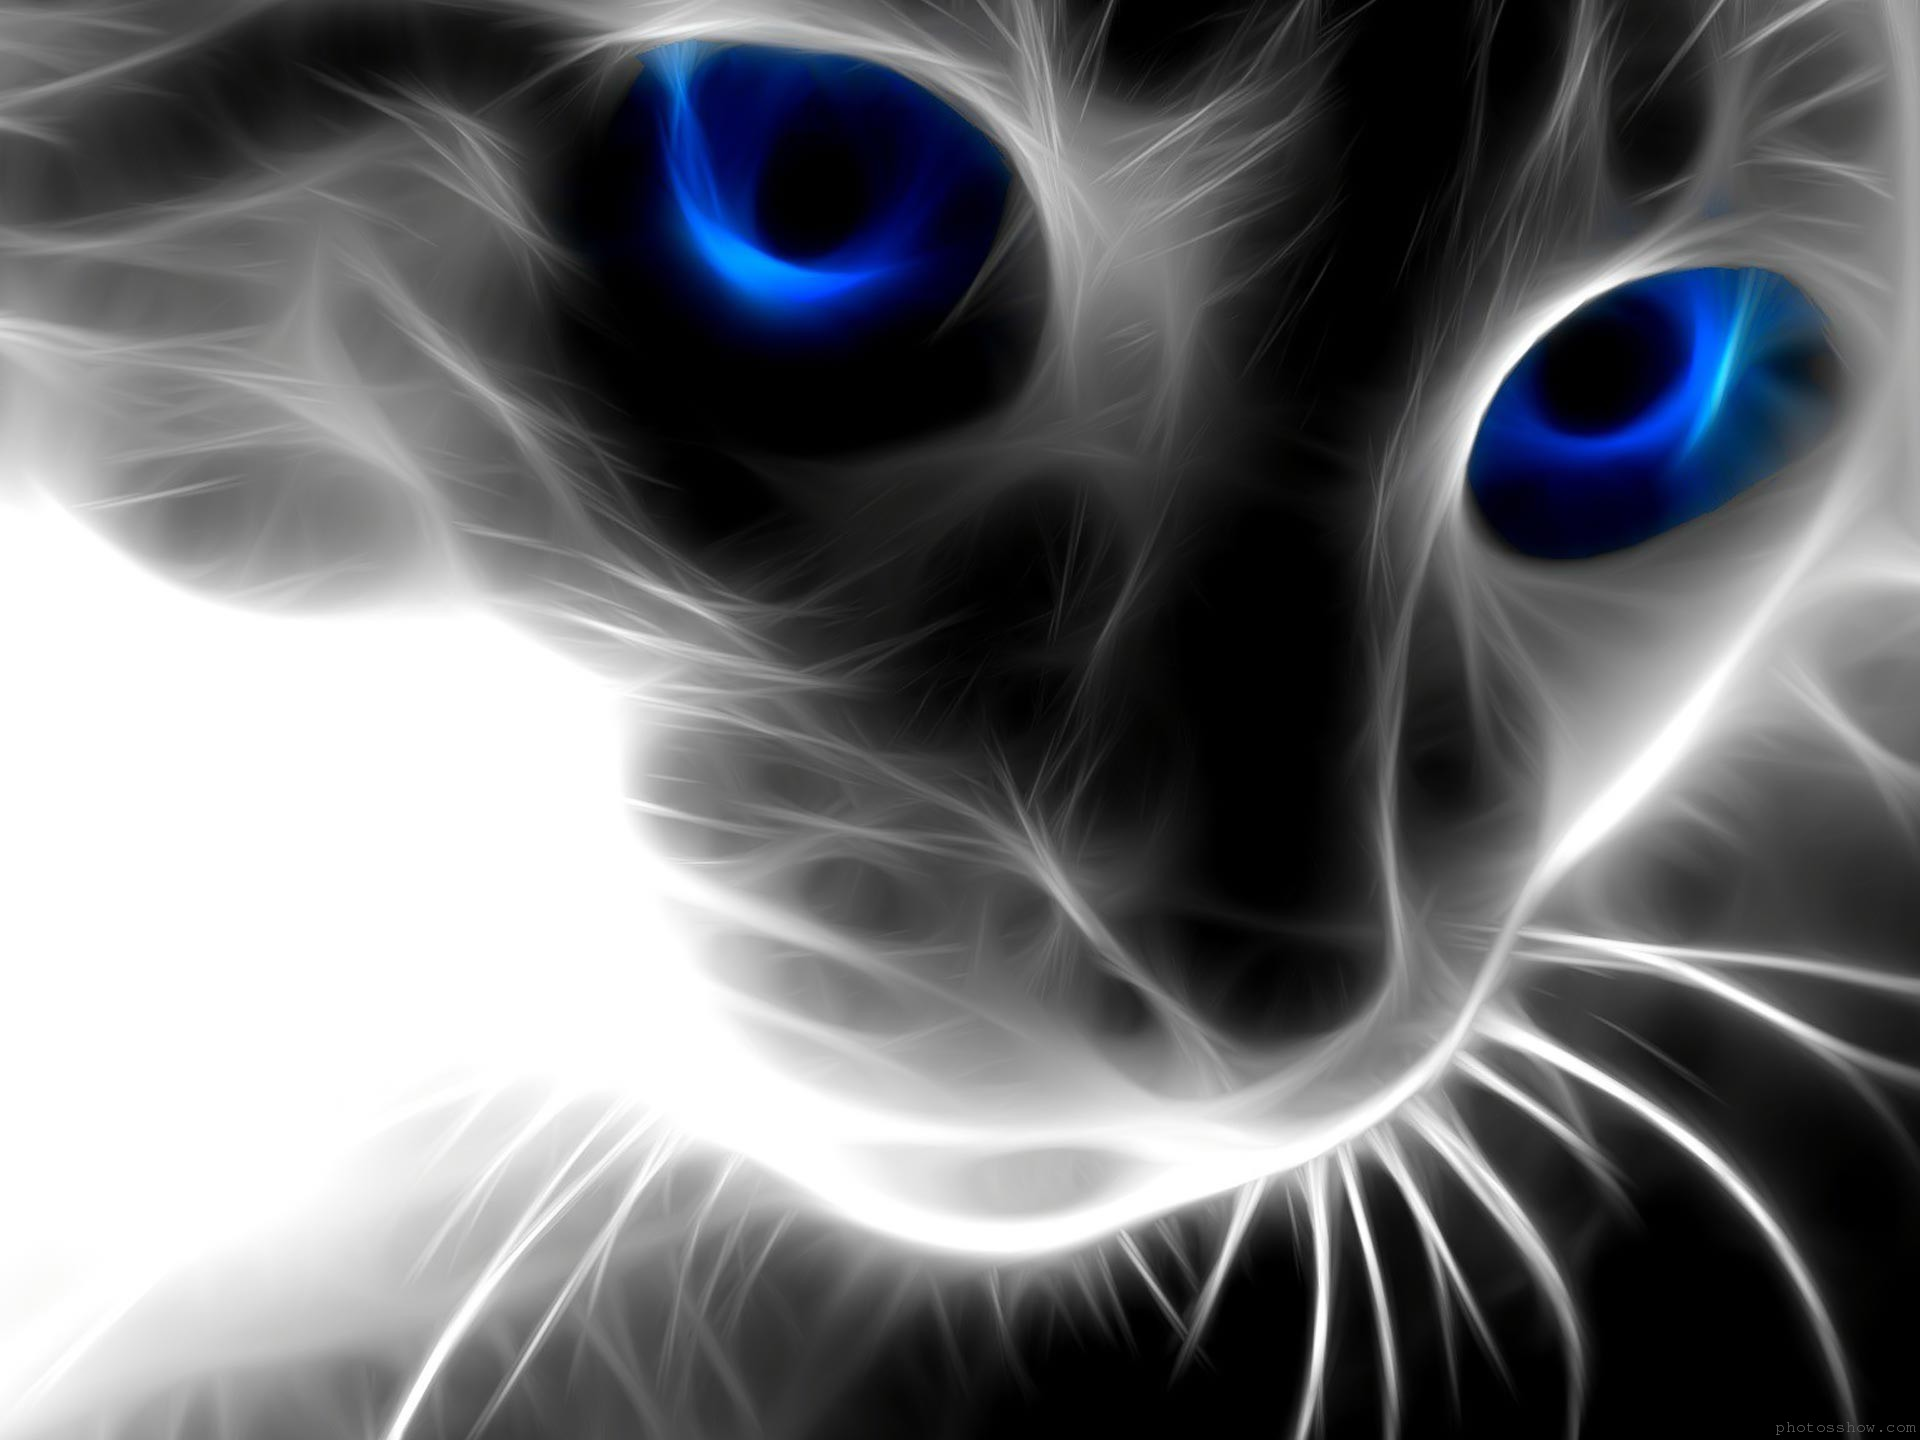 Black-Cat-With-Blue-Eyes-High-Definition-wallpaper-wp3603400